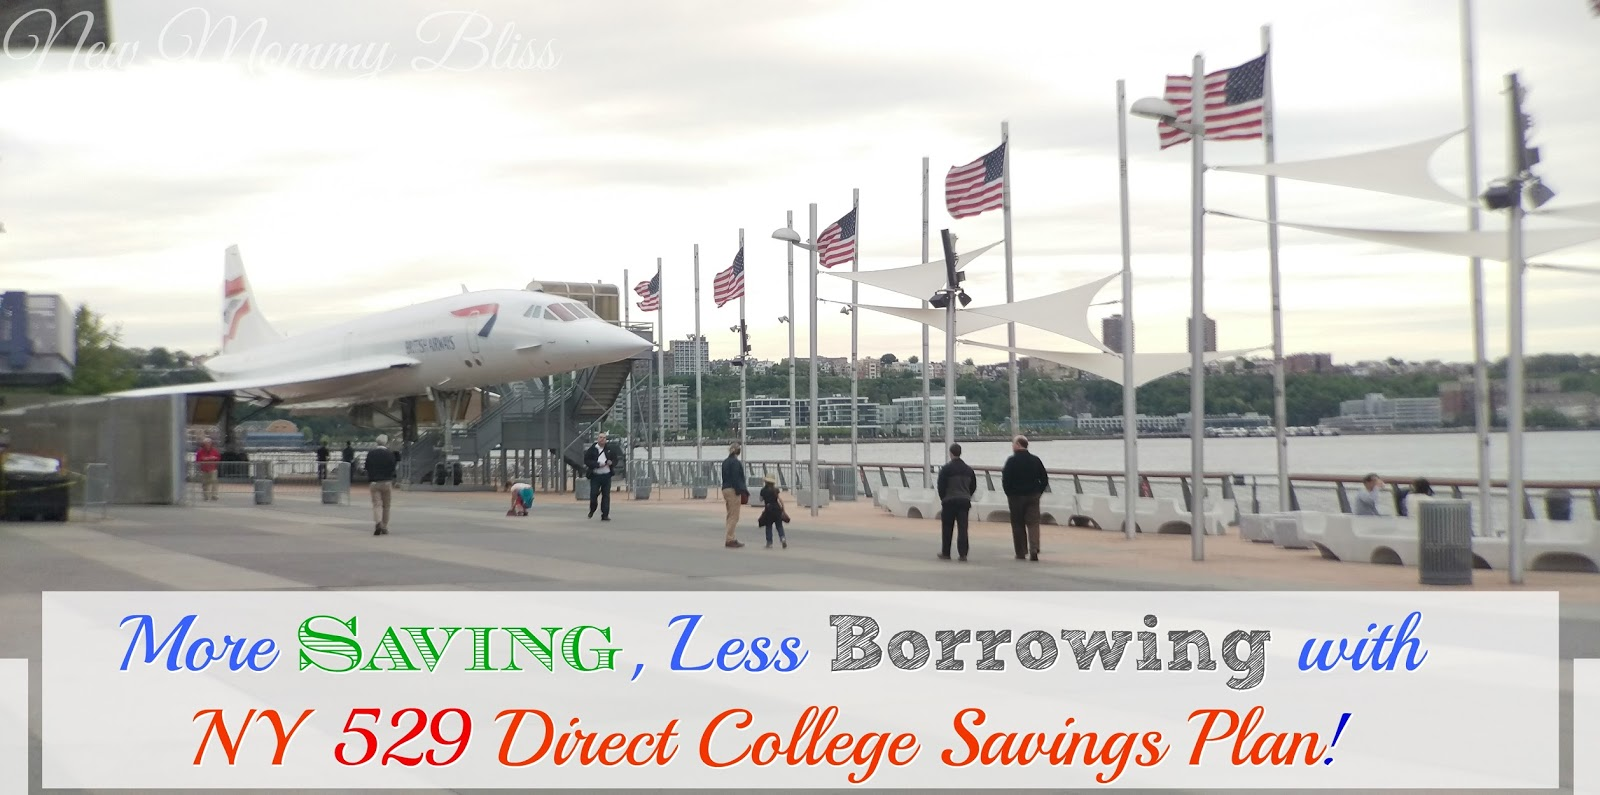 529 college savings plan direct - Ny 529 Direct College Savings Plan